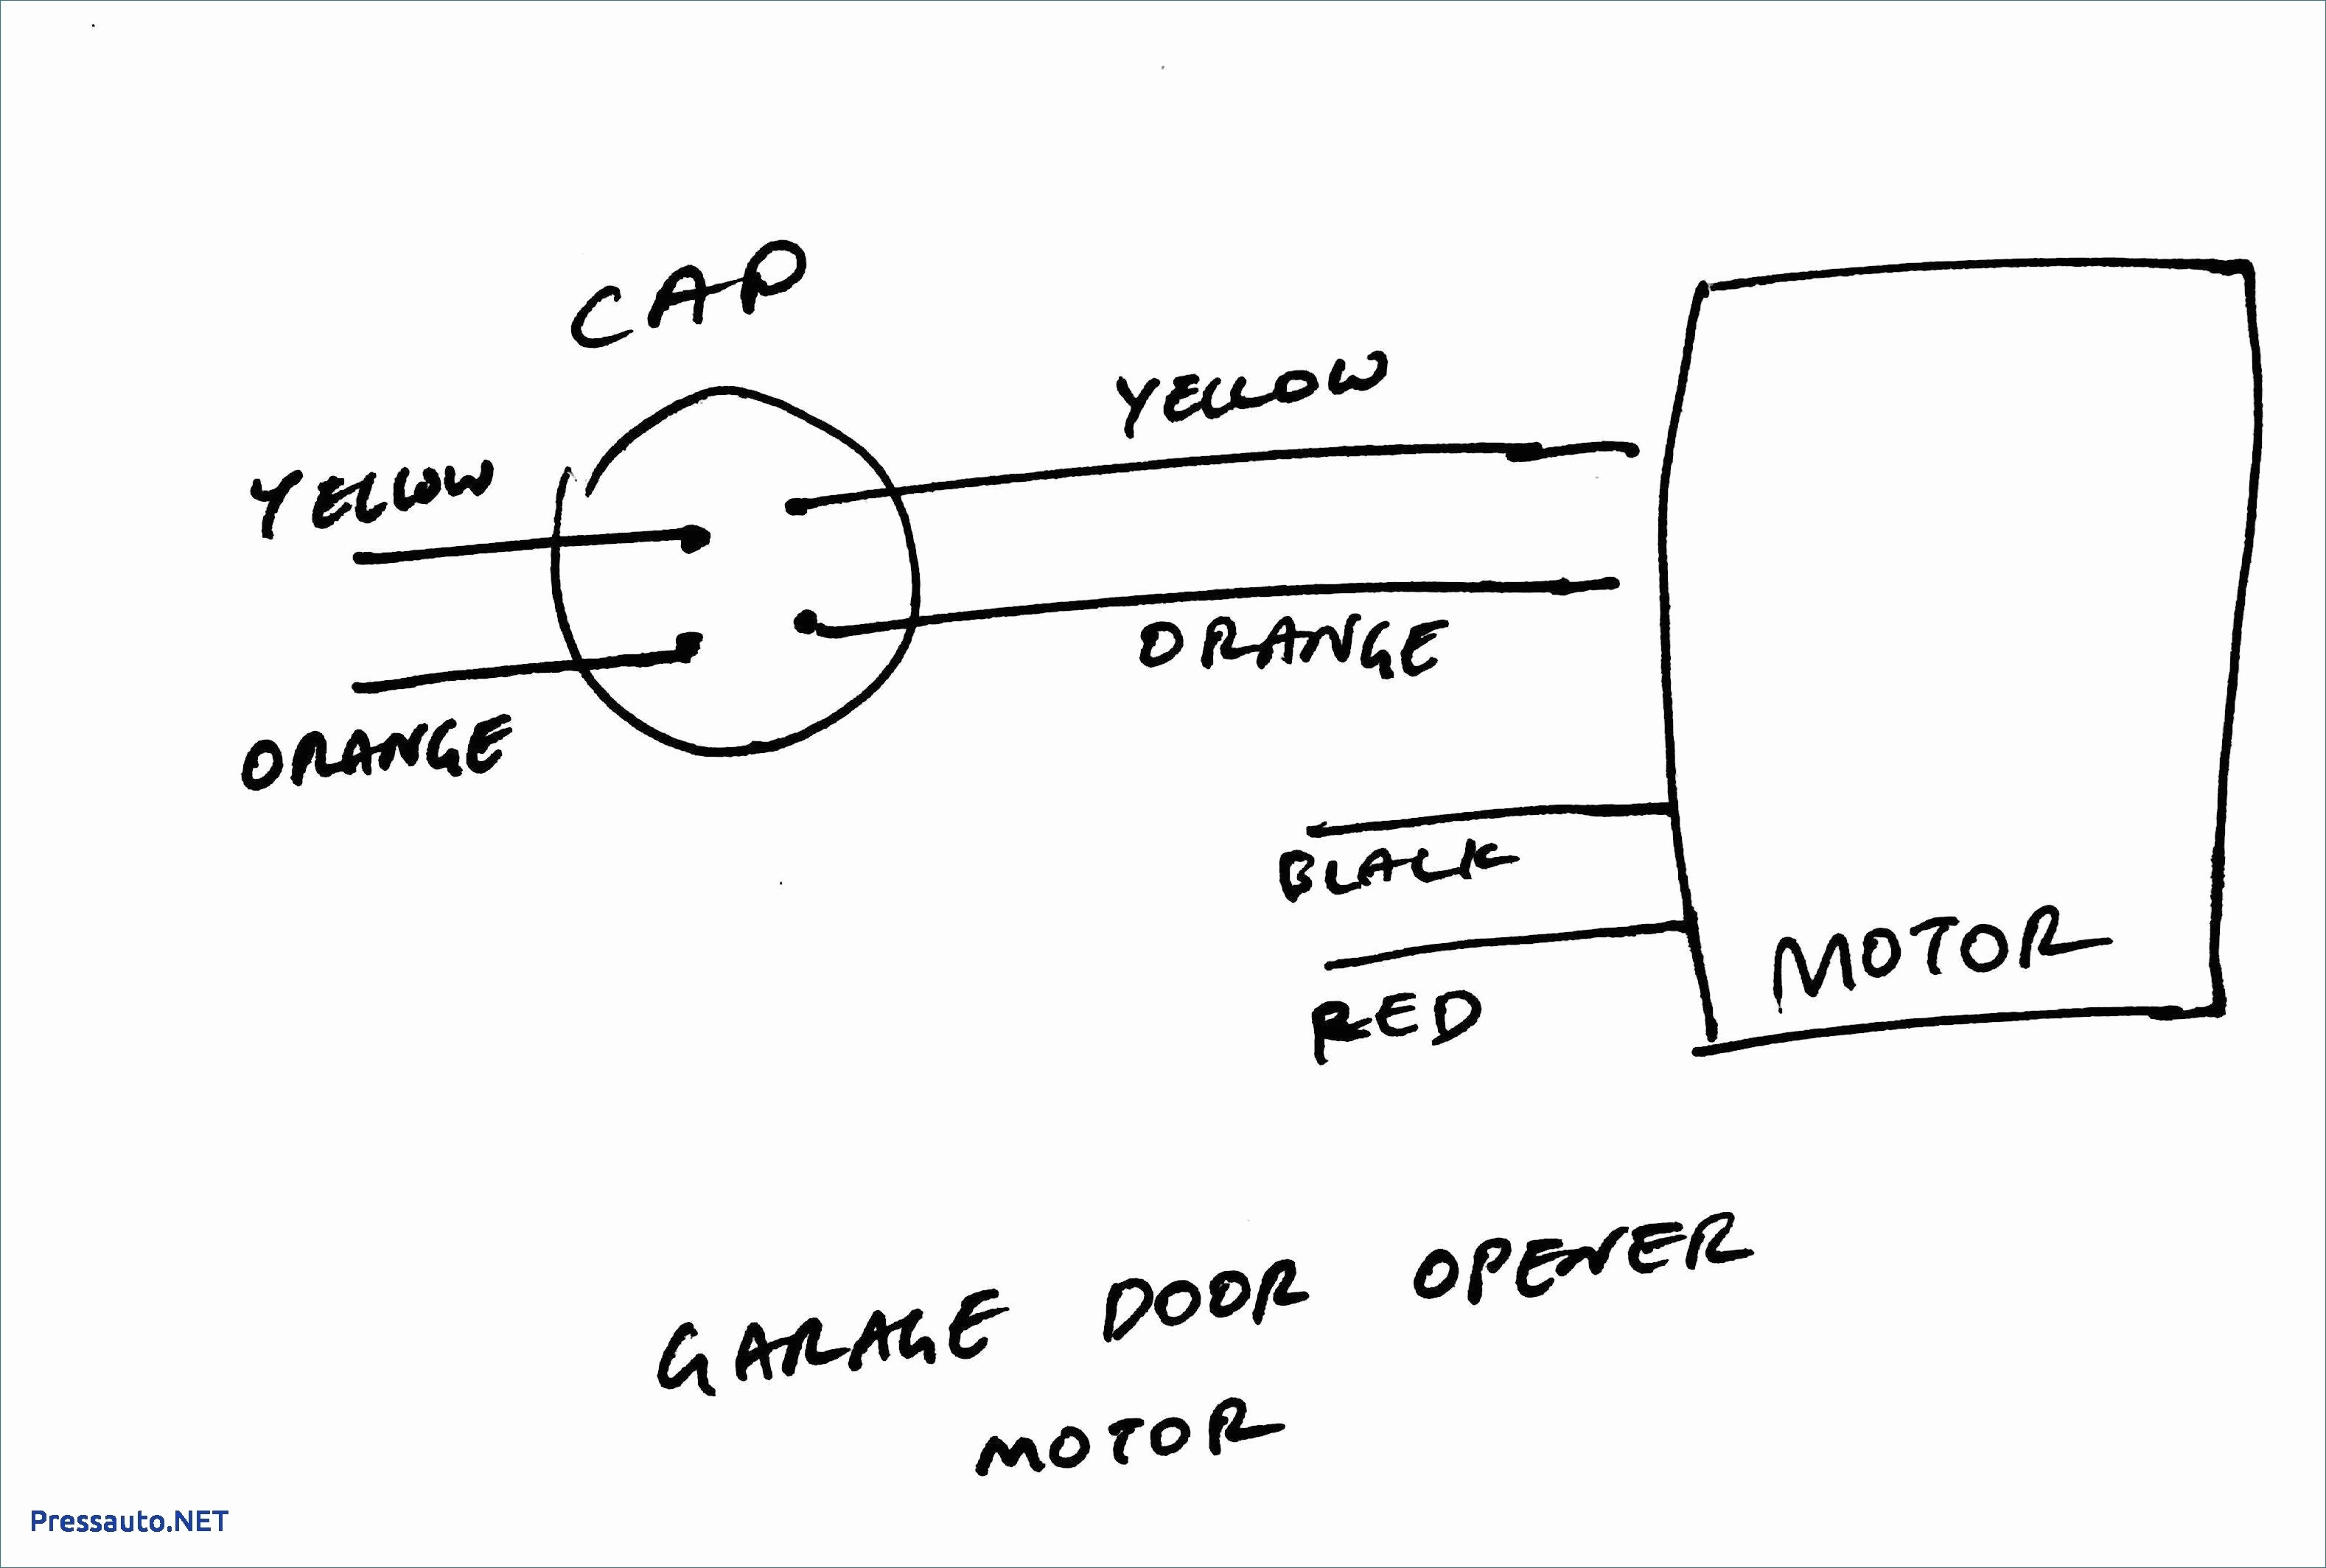 star motor wiring diagram ea0aefc star delta wiring diagram refrigeration air conditioning motor star delta wiring diagram pdf ea0aefc star delta wiring diagram